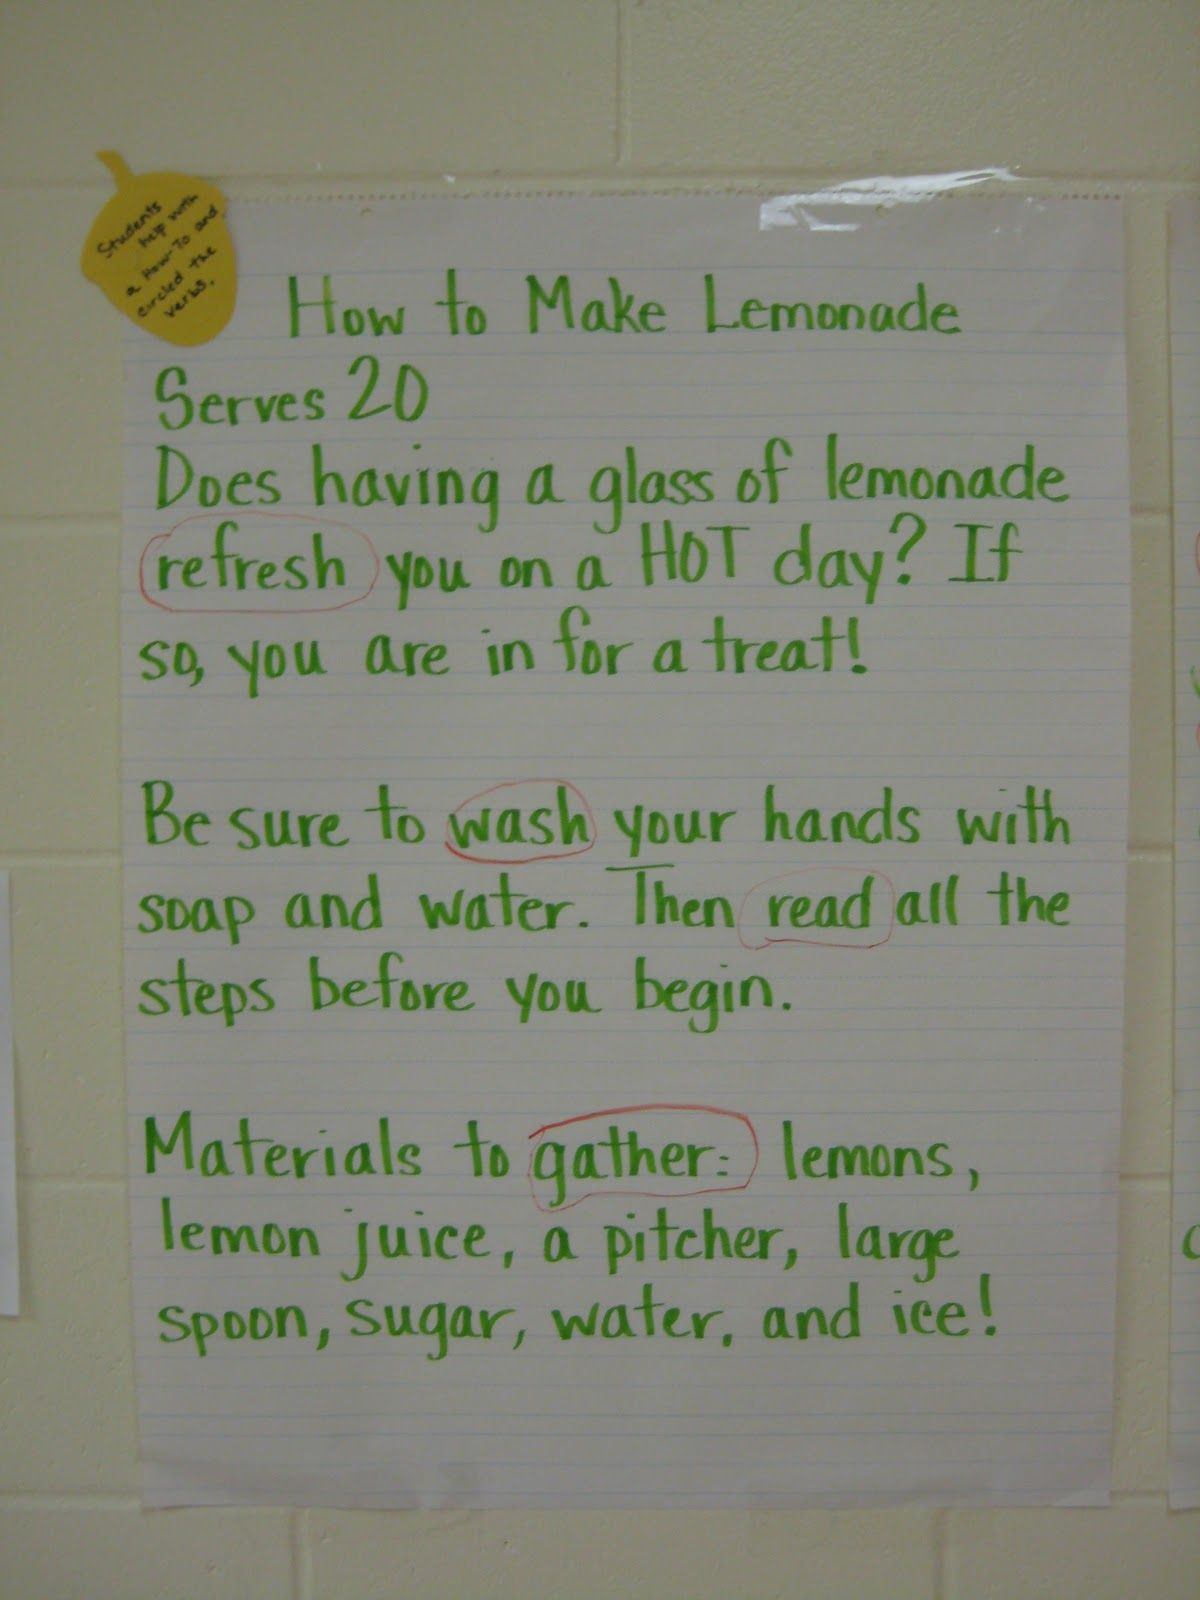 Used a unit on lemonade to teach about verbs and also a science experiment